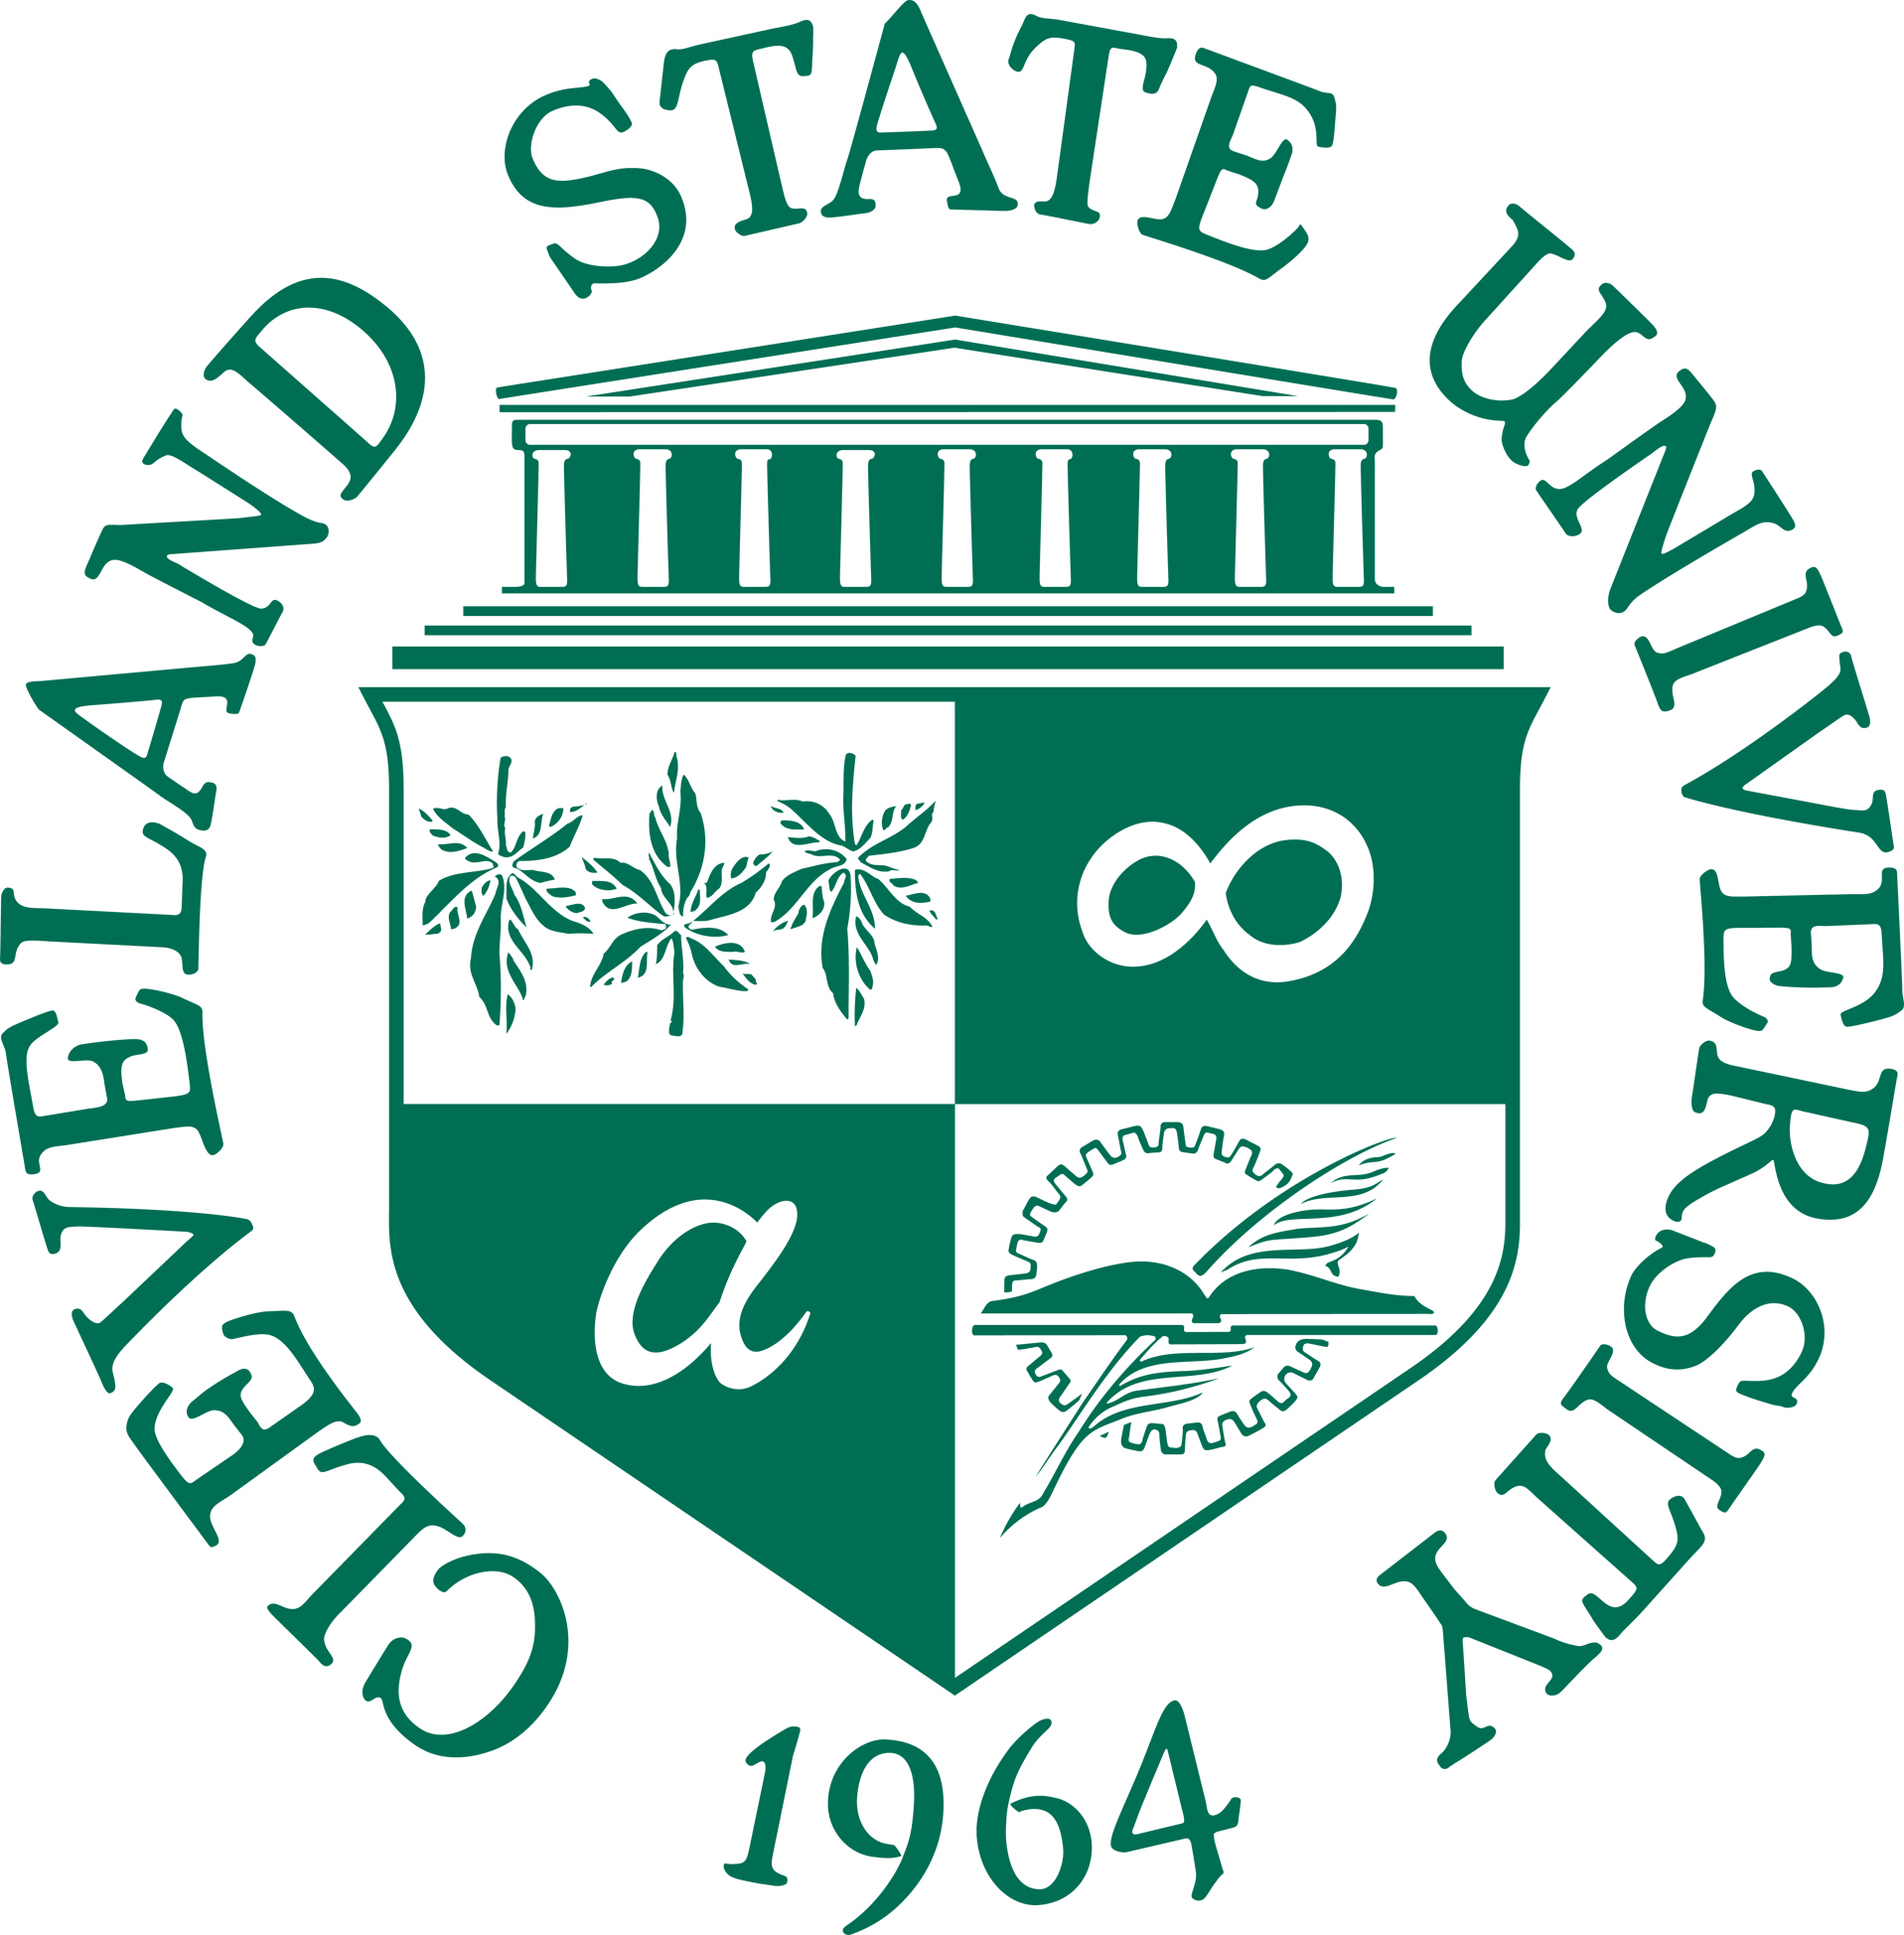 Cleveland State University, Monte Ahuja College of Business, Department of Finance